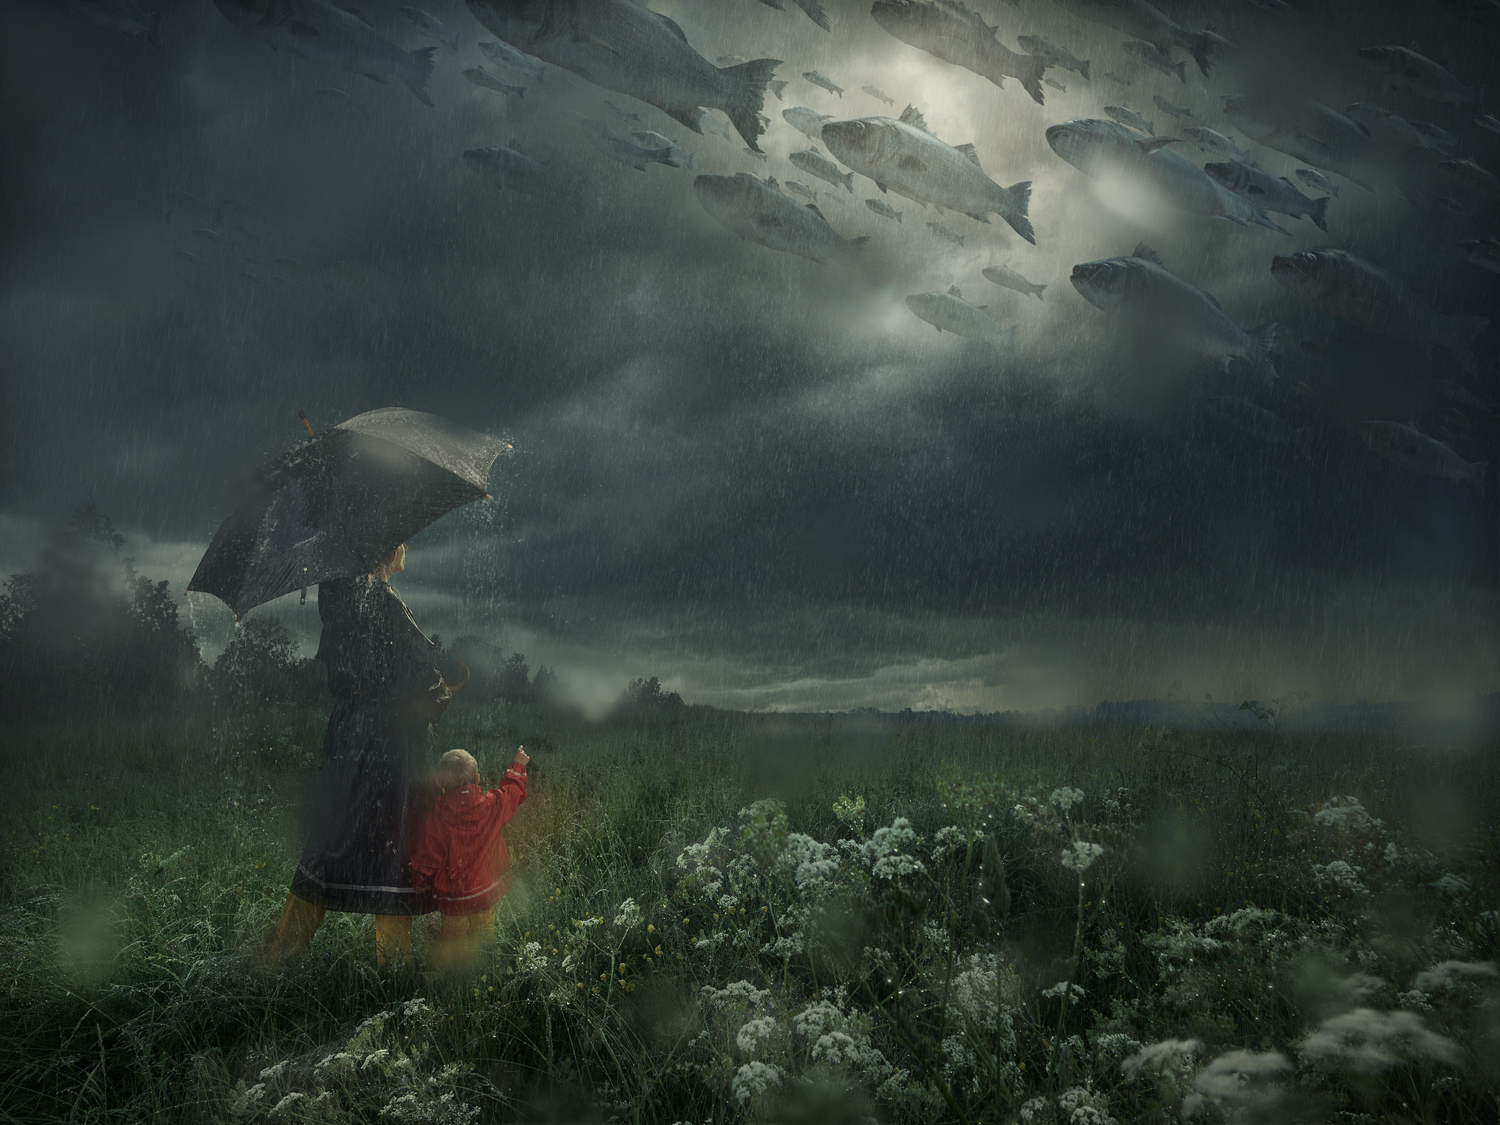 Erik Johansson Lost in the Rain